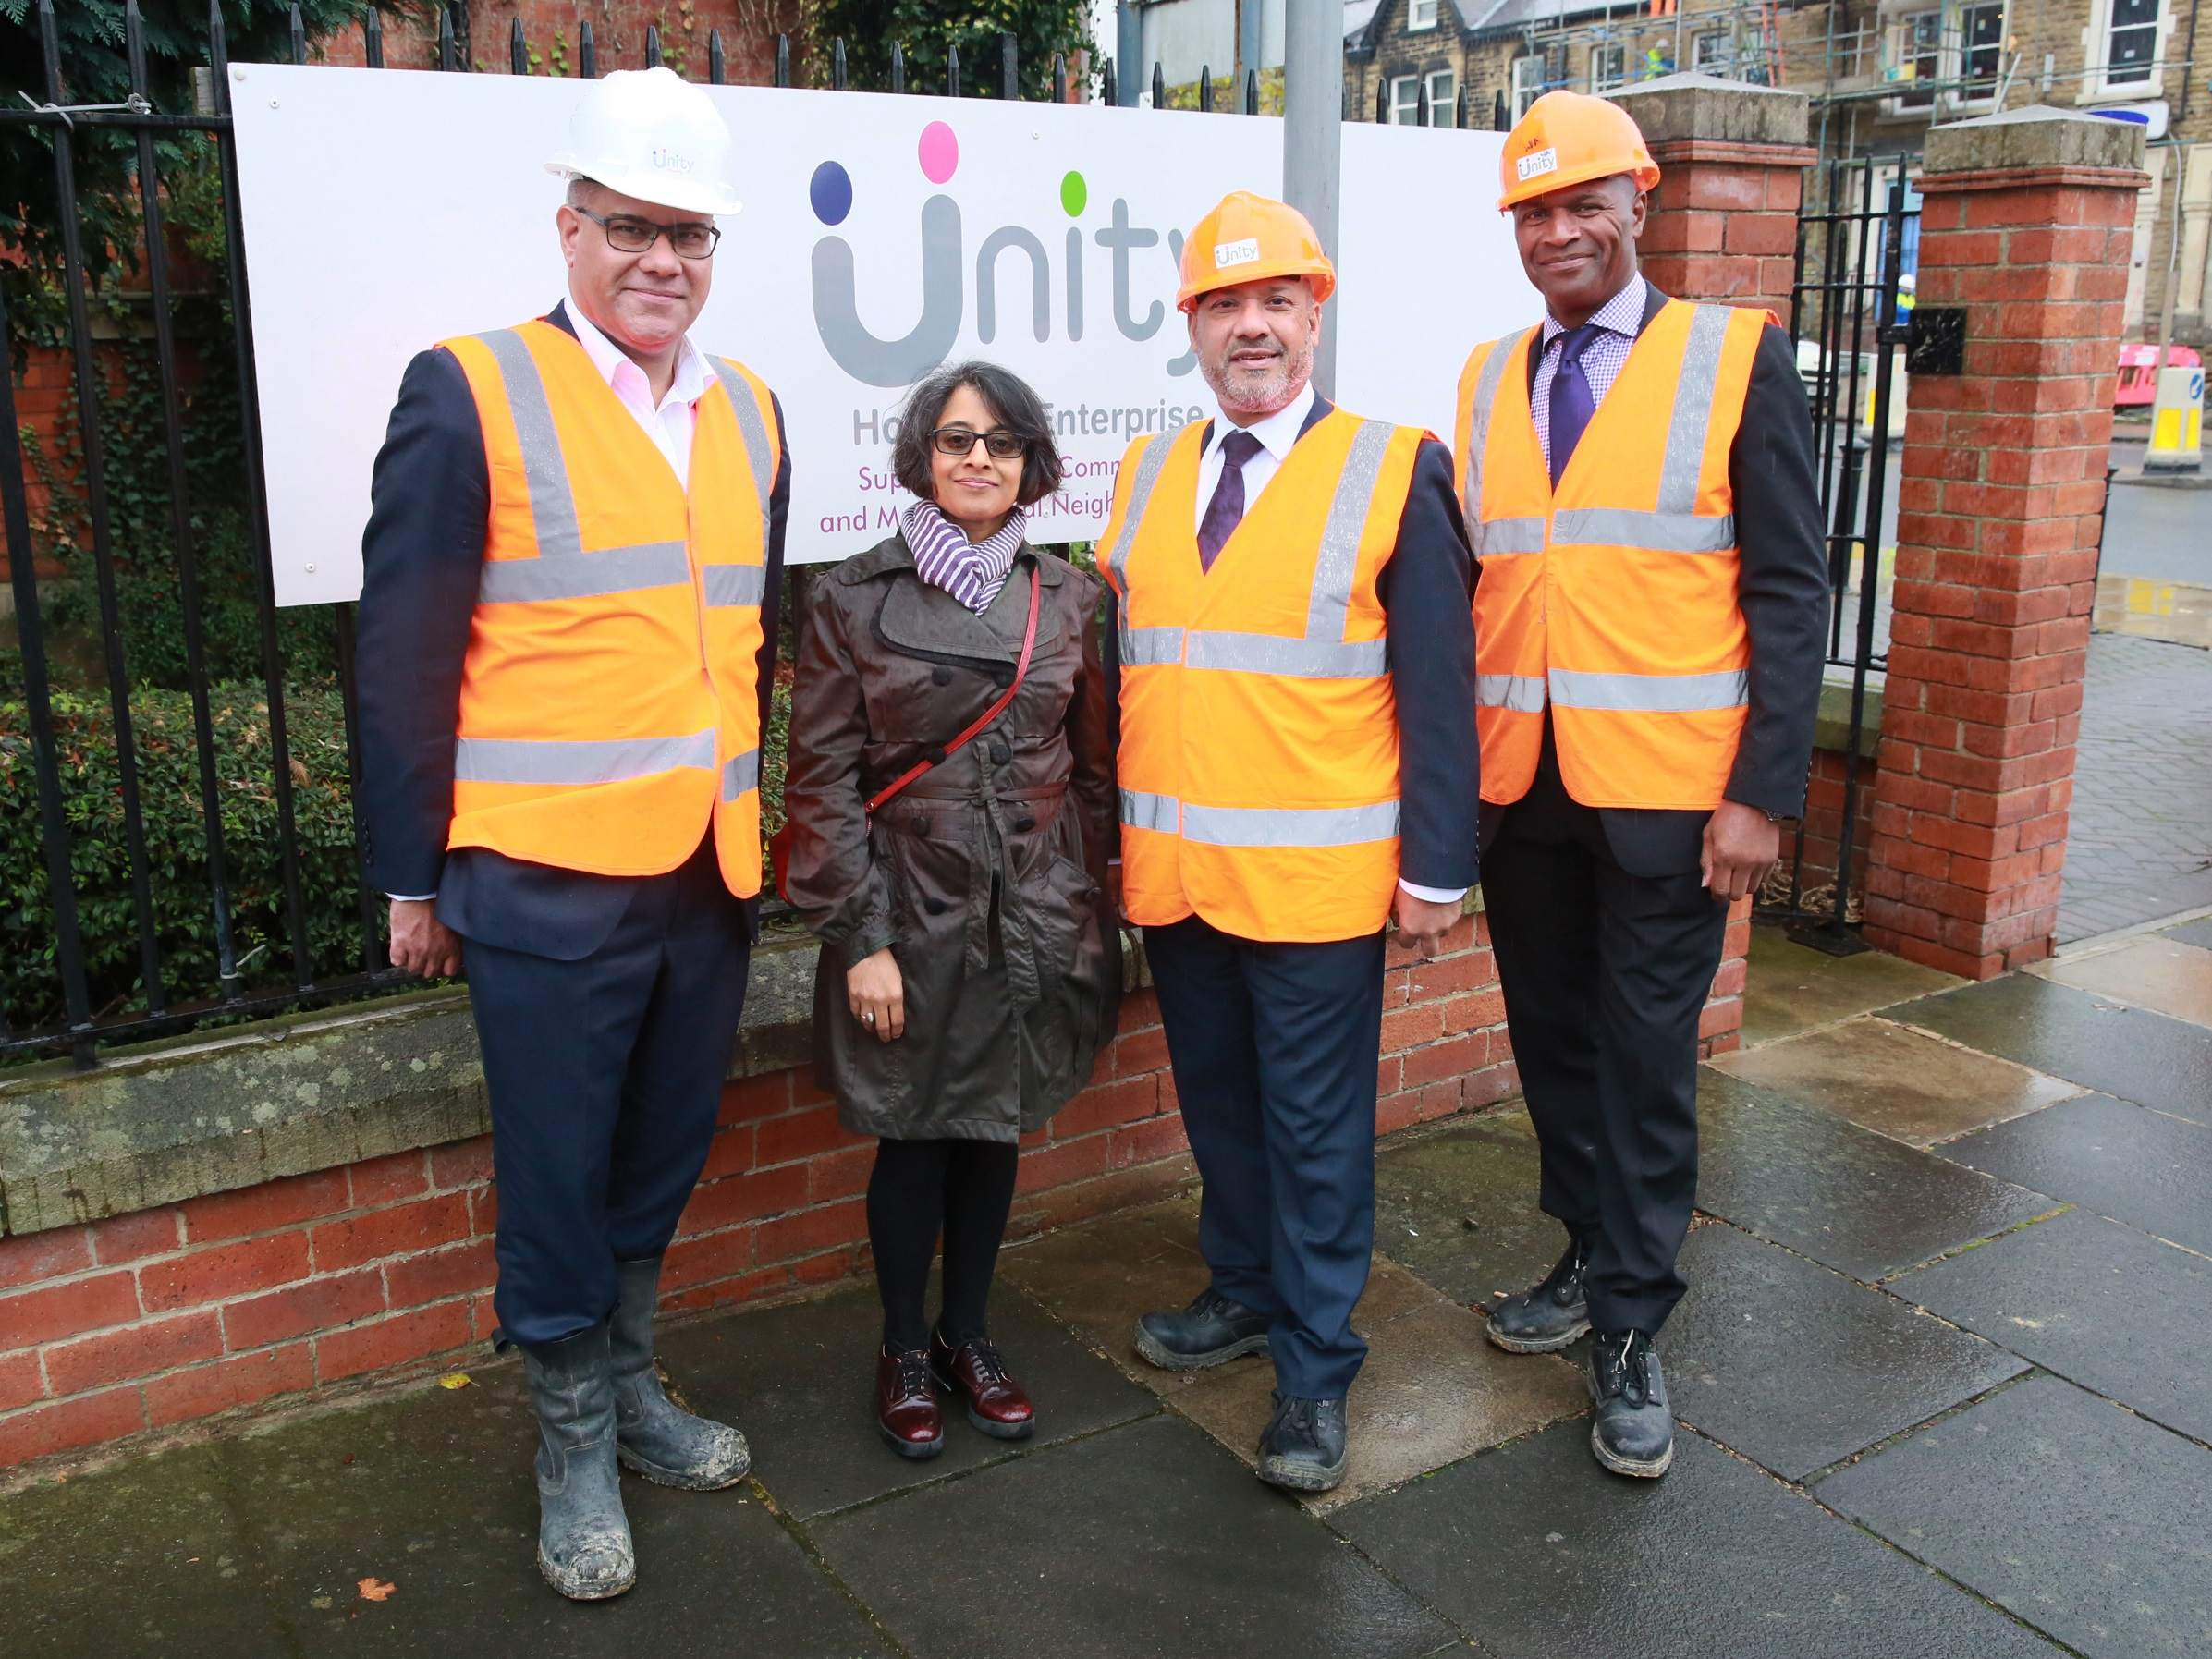 From left to right: Housing and Planning Minister Alok Sharma, Unity chair Shruti Bhargava, Unity chief executive Ali Akbor and Unity regeneration director Wayne Noteman during today's visit to the Chapeltown Road affordable homes development in Leeds